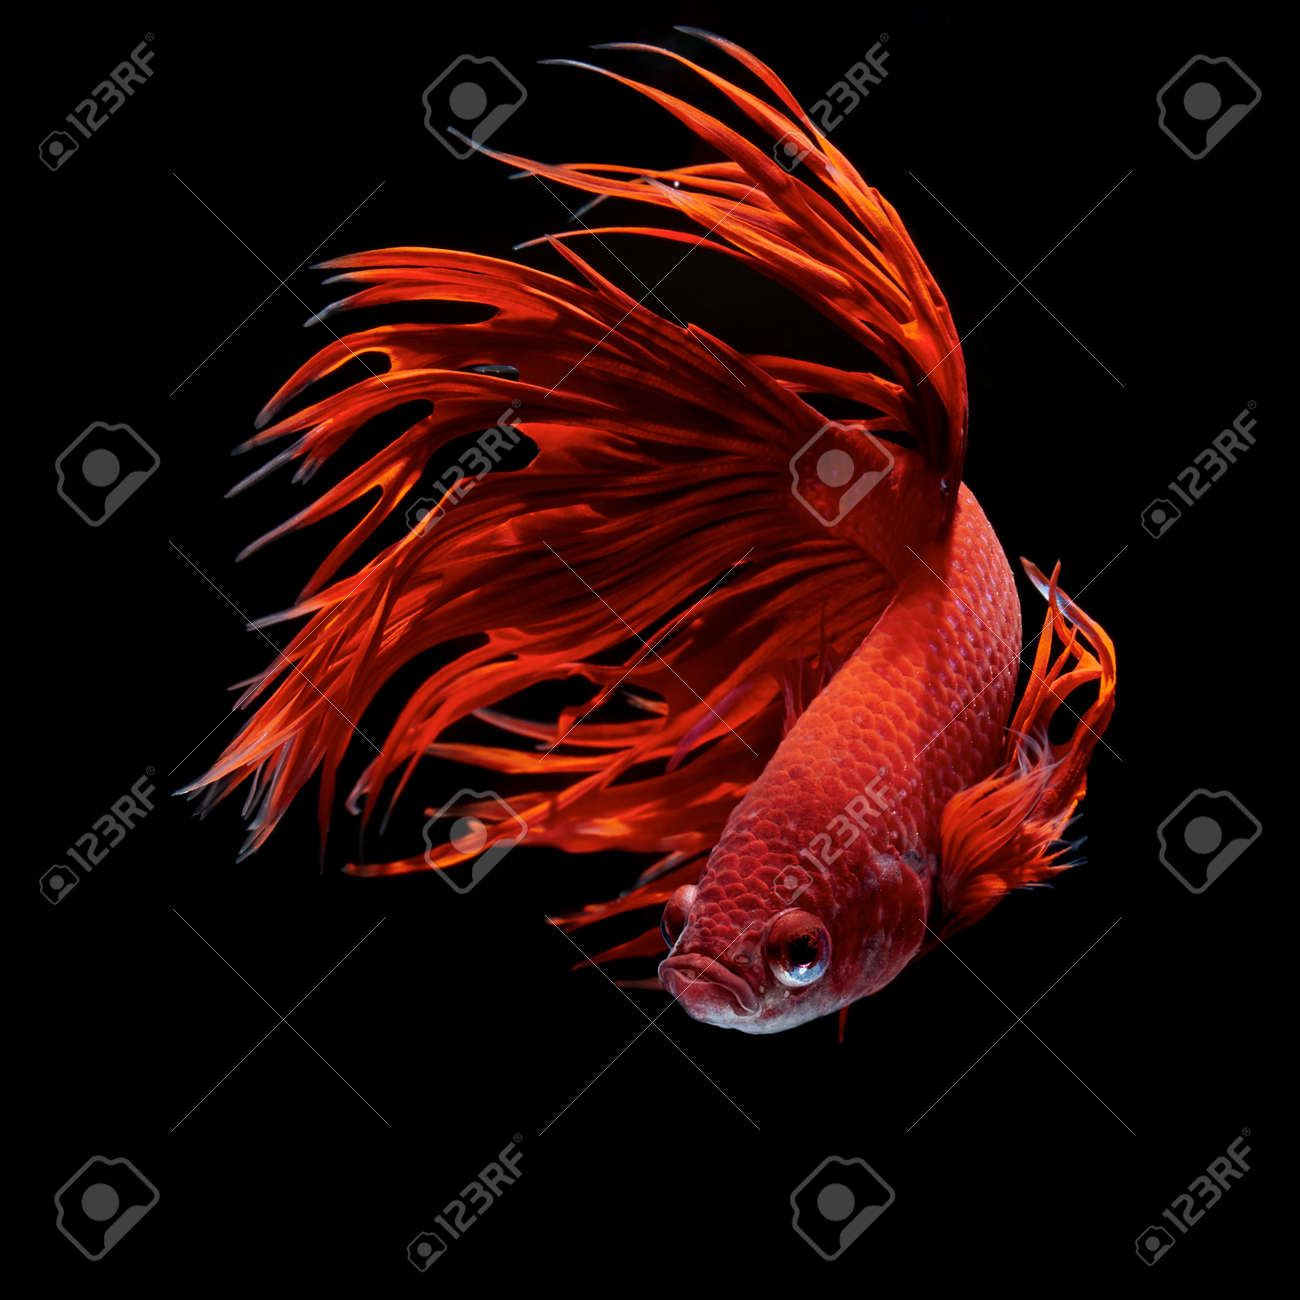 Betta Stock Photos. Royalty Free Betta Images